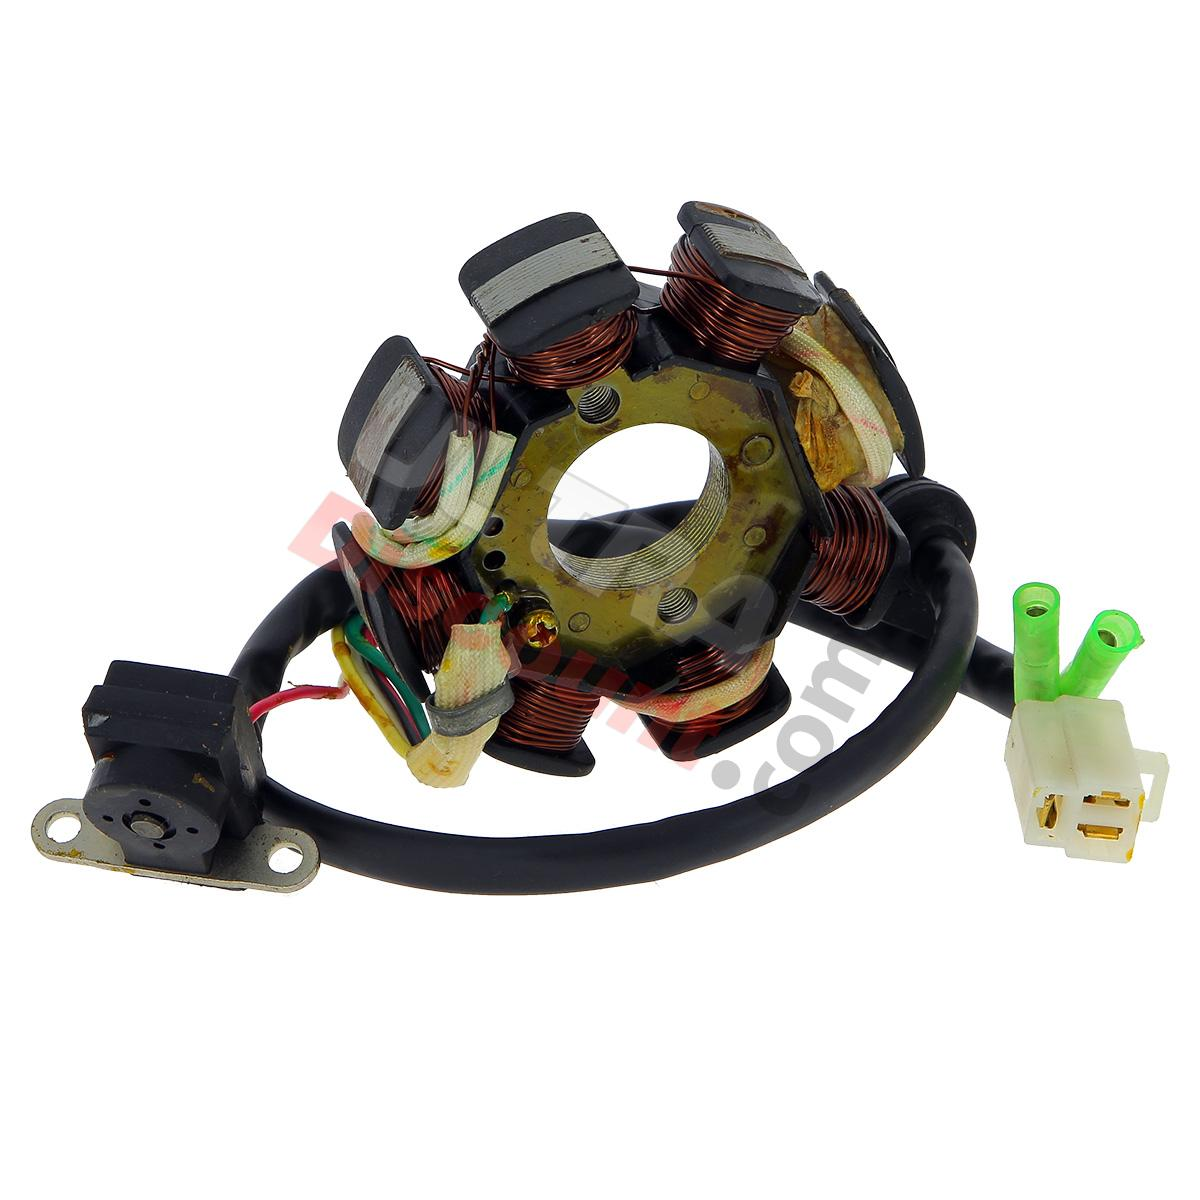 stator pour scooter chinois 50cc 4temps 5 fils pi ces scooter allumage ultra. Black Bedroom Furniture Sets. Home Design Ideas